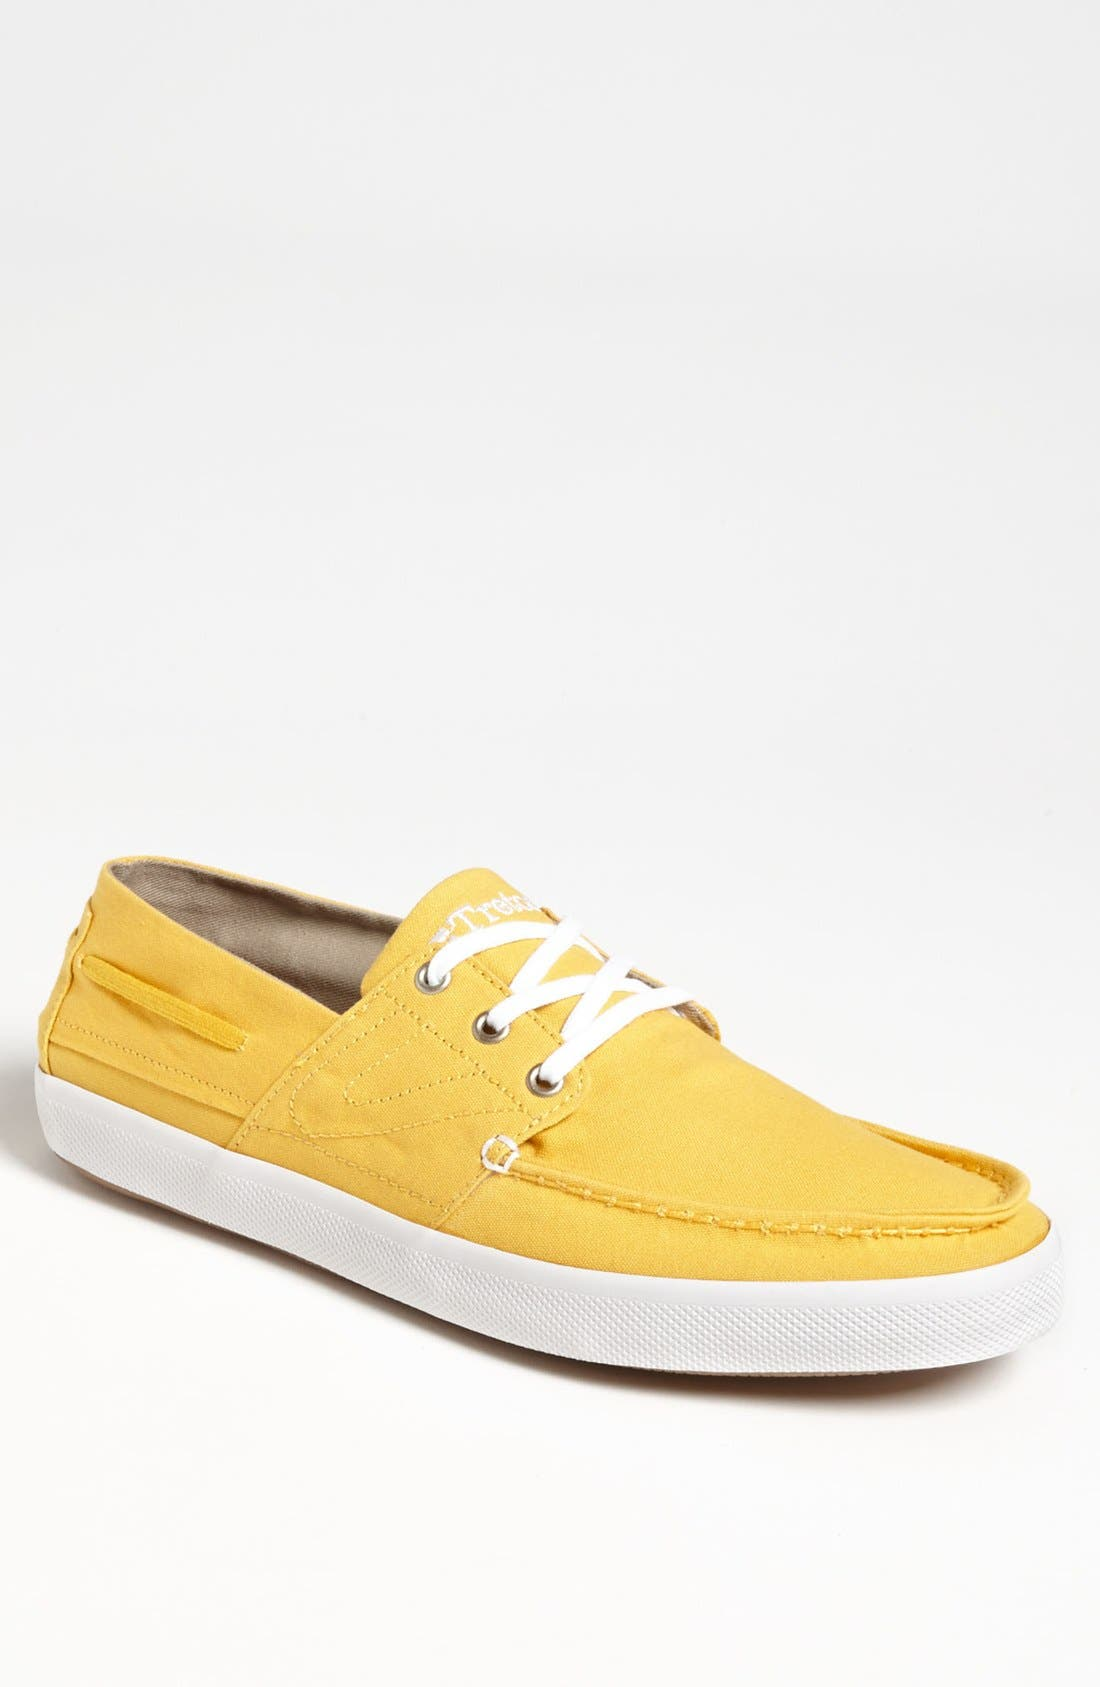 Alternate Image 1 Selected - Tretorn 'Otto' Boat Shoe